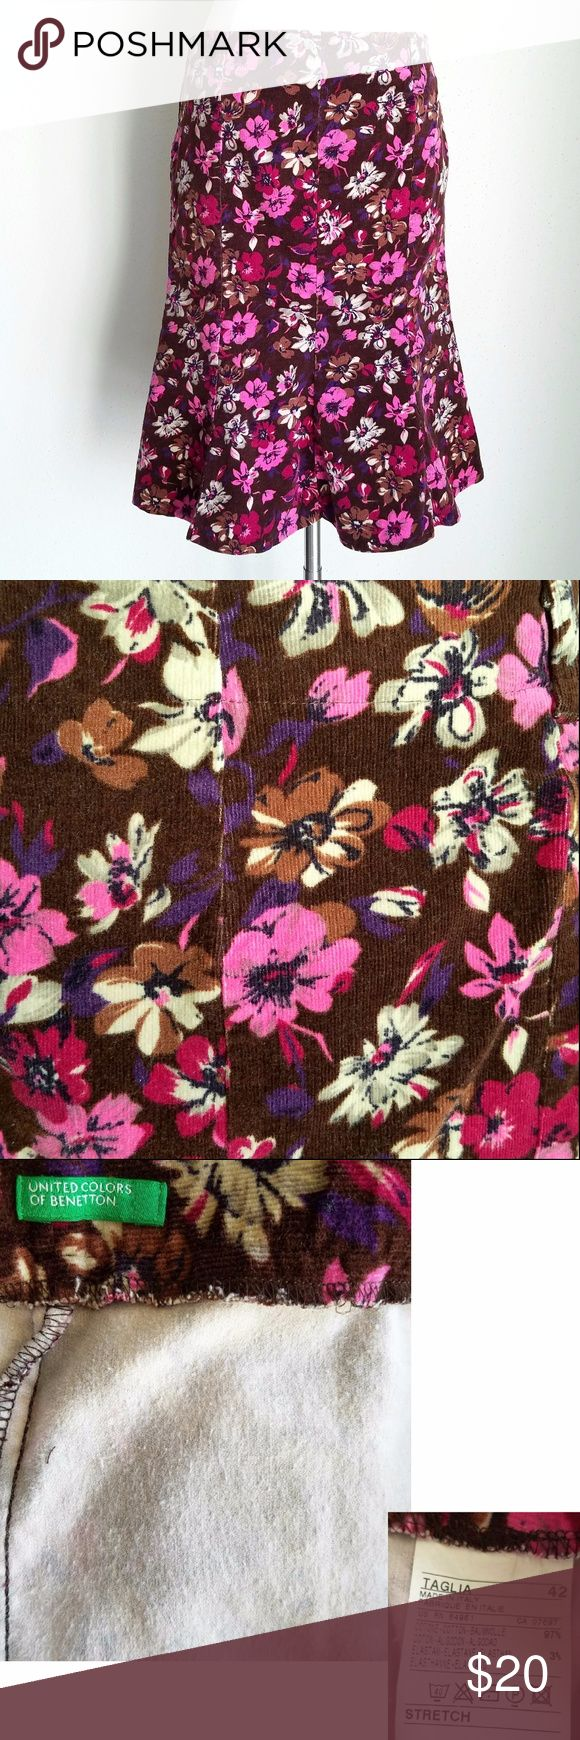 """🆕Benetton BrownPink Floral Corduroy Stretch Skirt Brown stretchy corduroy with flower pattern in pink, purple, ivory, and brown. United Colors of Benetton brand. Trumpet shape is slim through hips and butt with A-line flare on bottom. Belt loops, but no belt included. 97% cotton, 3% elastane.  Gently used condition (outside looks EXCELLENT, no stains, no tears, but interior lining has pilling- see photos)  European size 42 (Medium). Length (waist to hem)- 22"""" (knee length), Waist- 32"""", Hip…"""